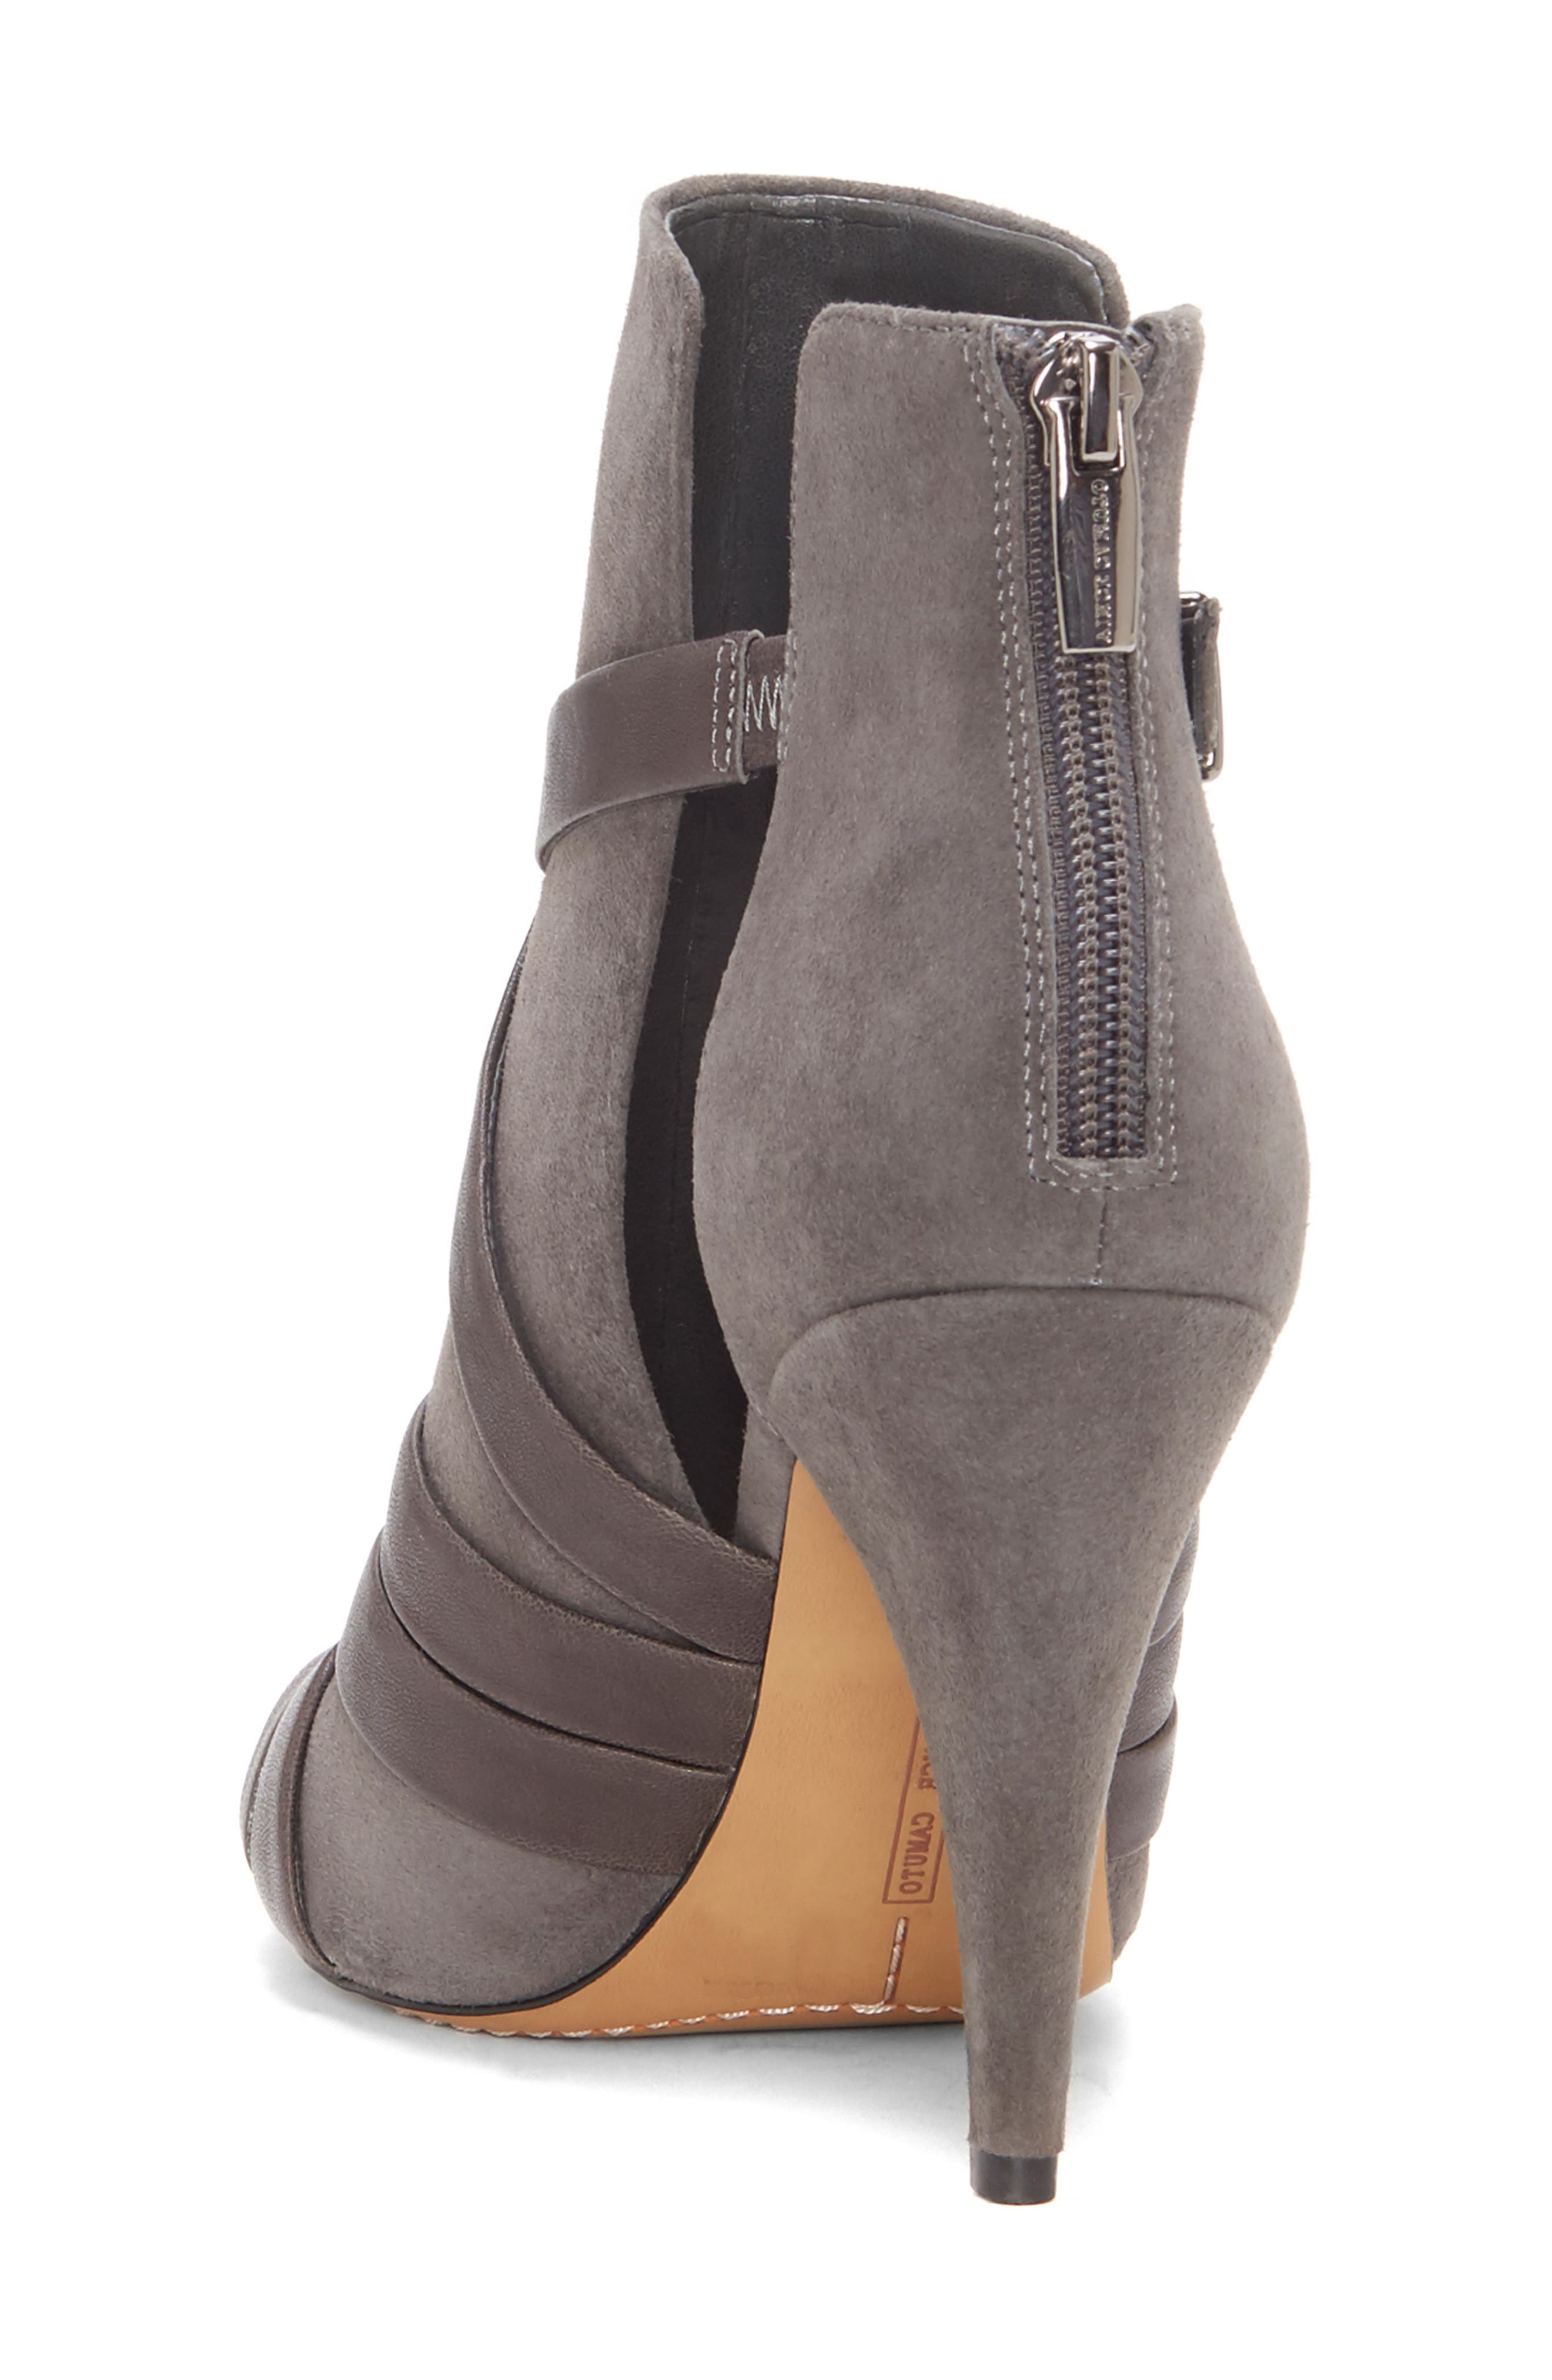 Achika Belted Peep Toe Bootie,                             Alternate thumbnail 2, color,                             POWER GREY LEATHER